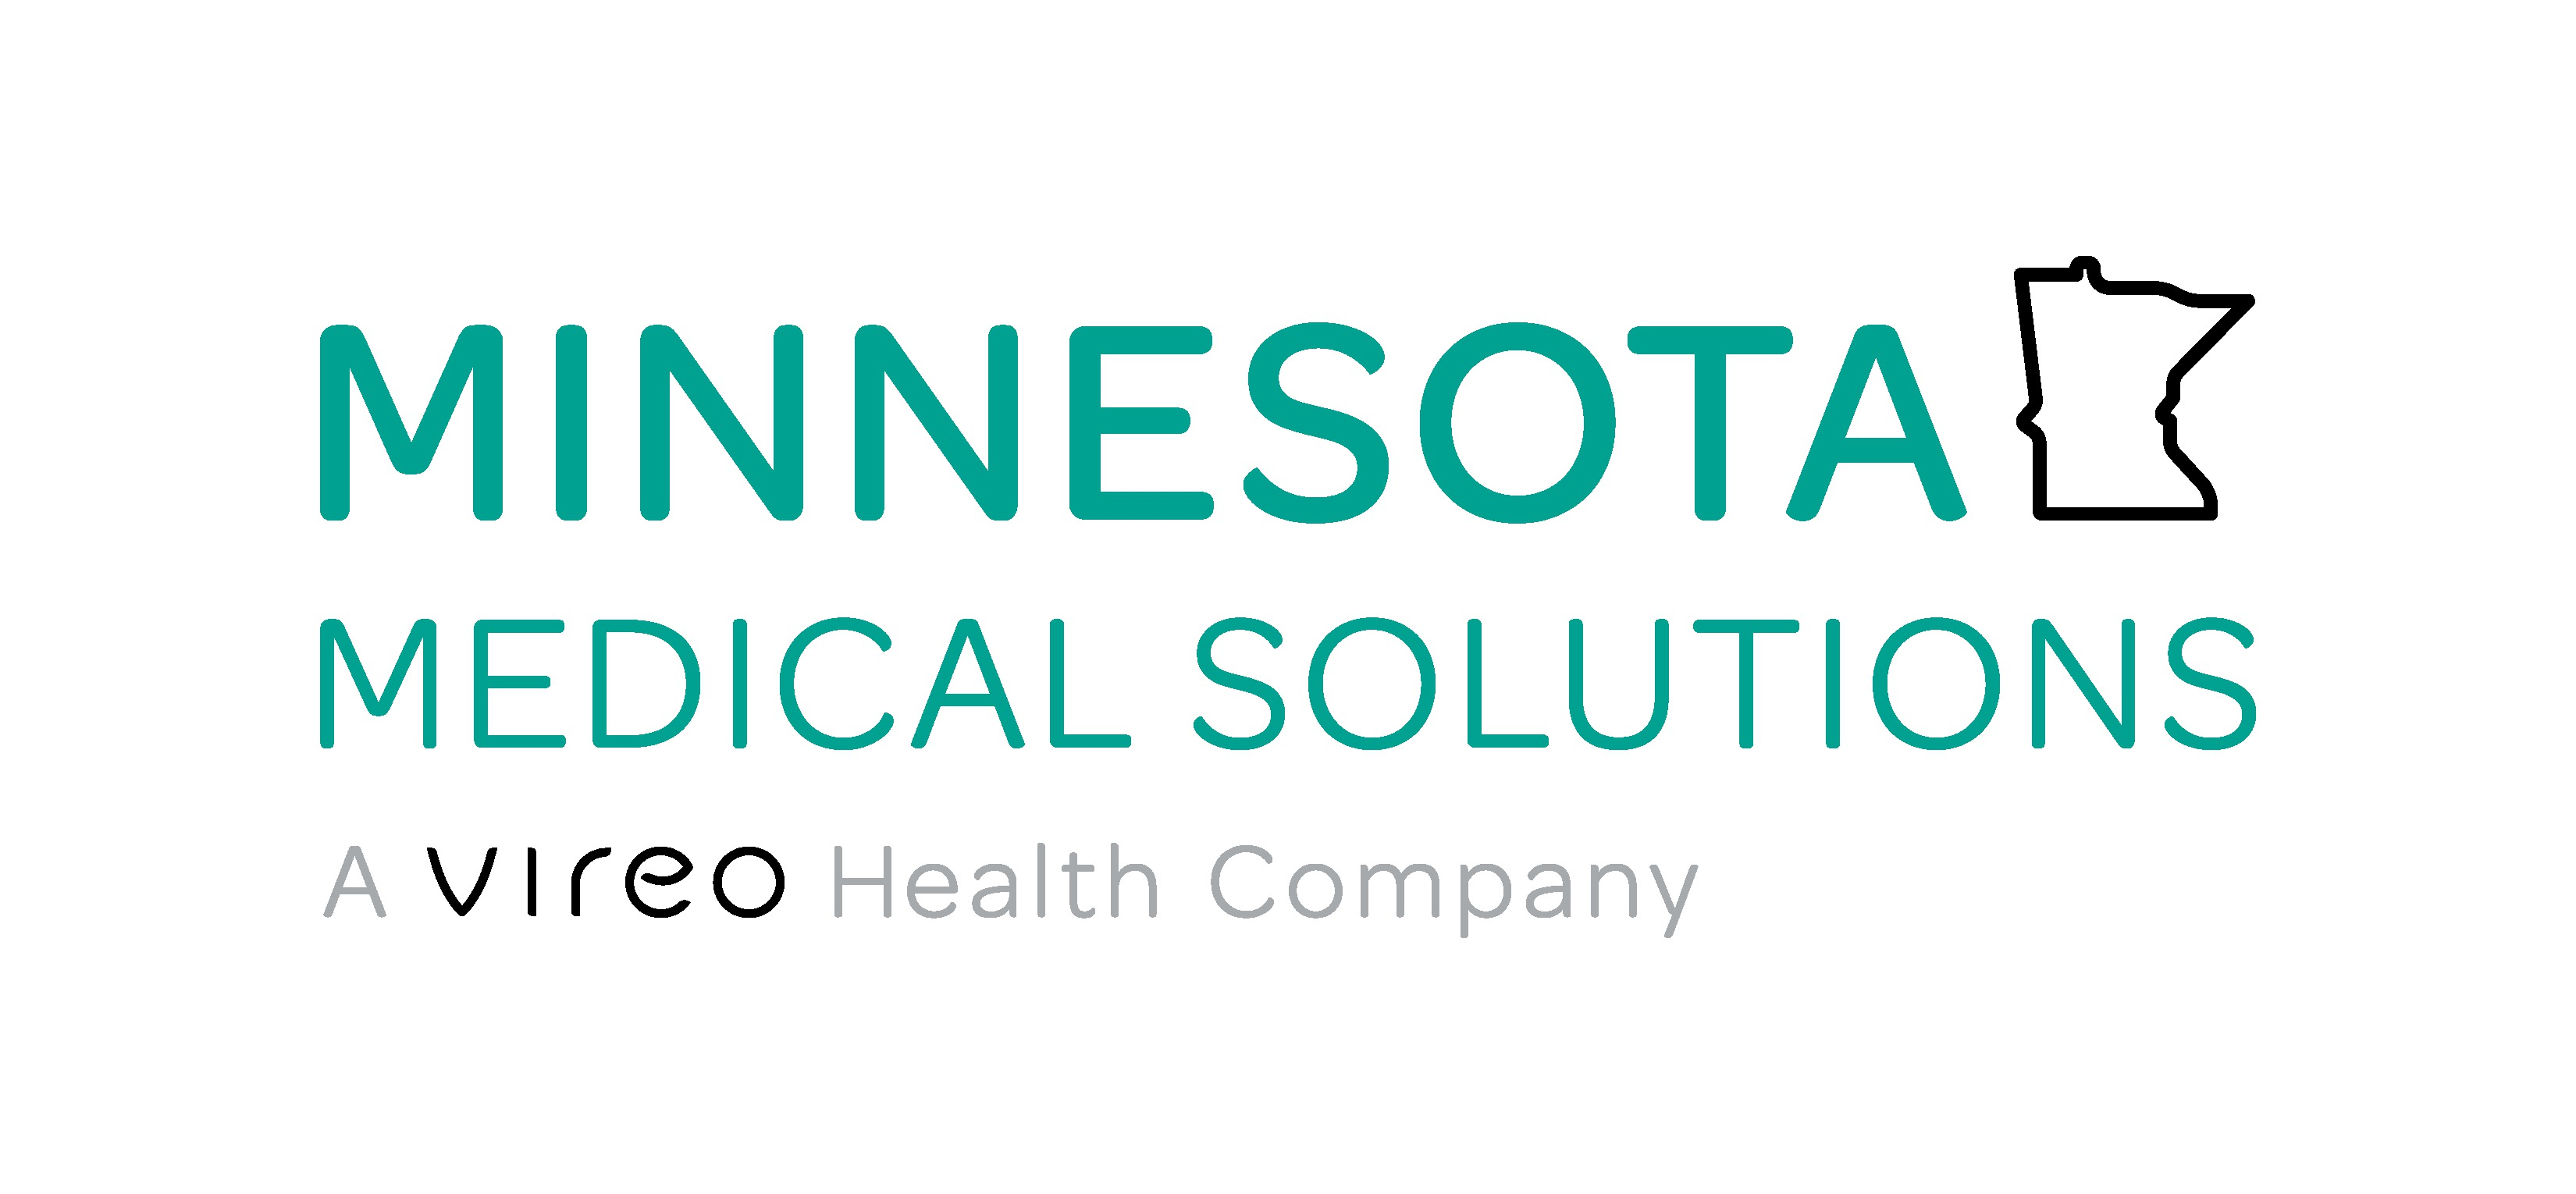 Minnesota Medial Solutions